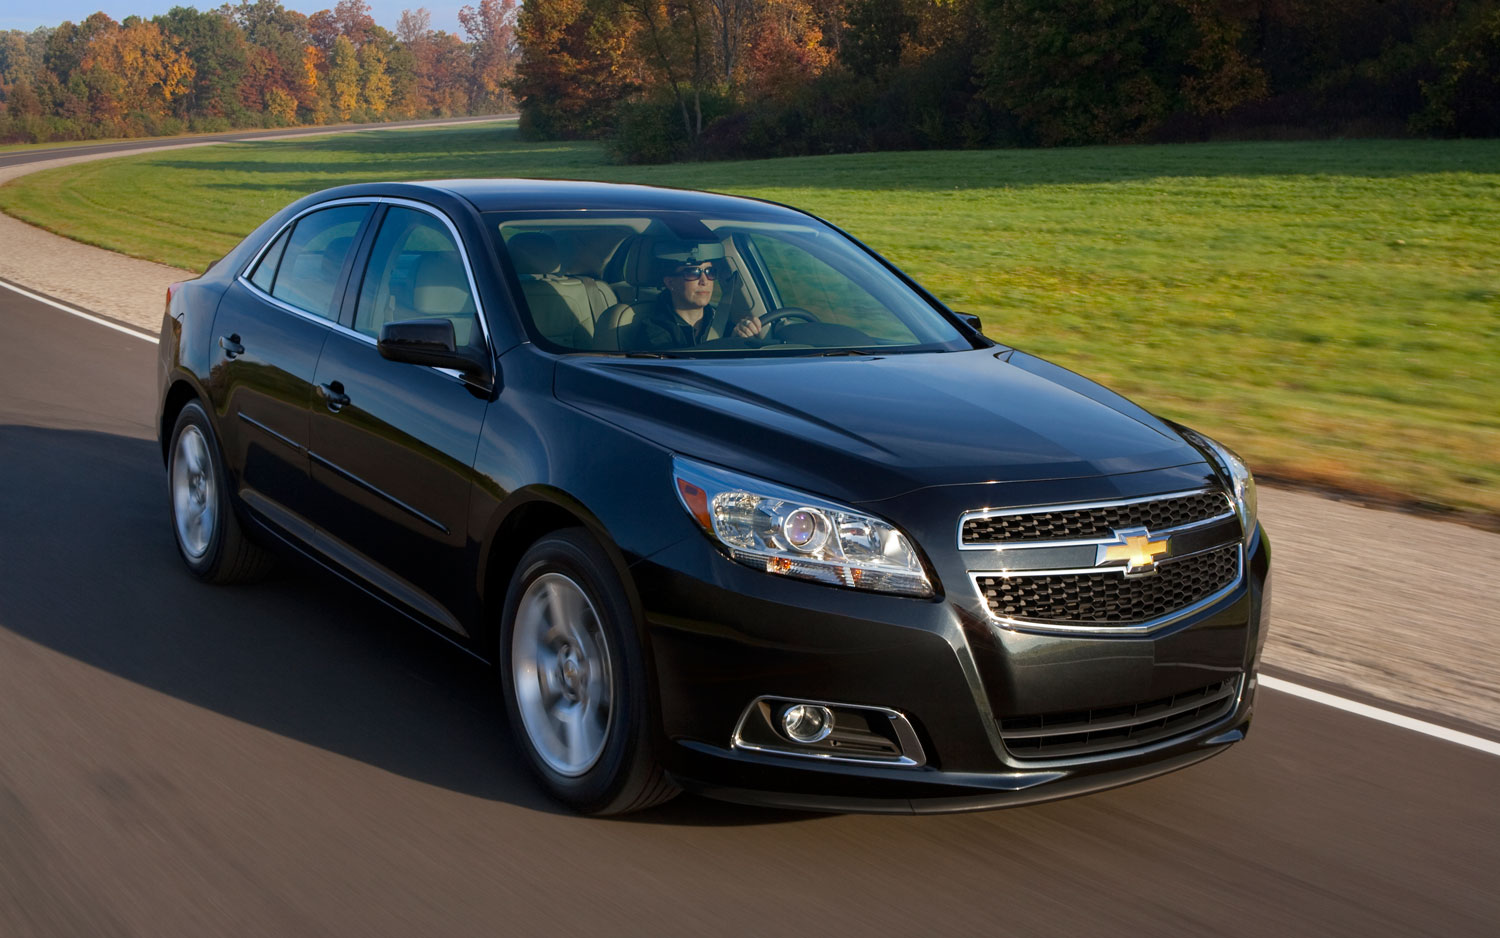 Malibu 2013 chevrolet malibu vin : Recall Central: 2013 Chevy Malibu Software, NHTSA Probe Expands to ...